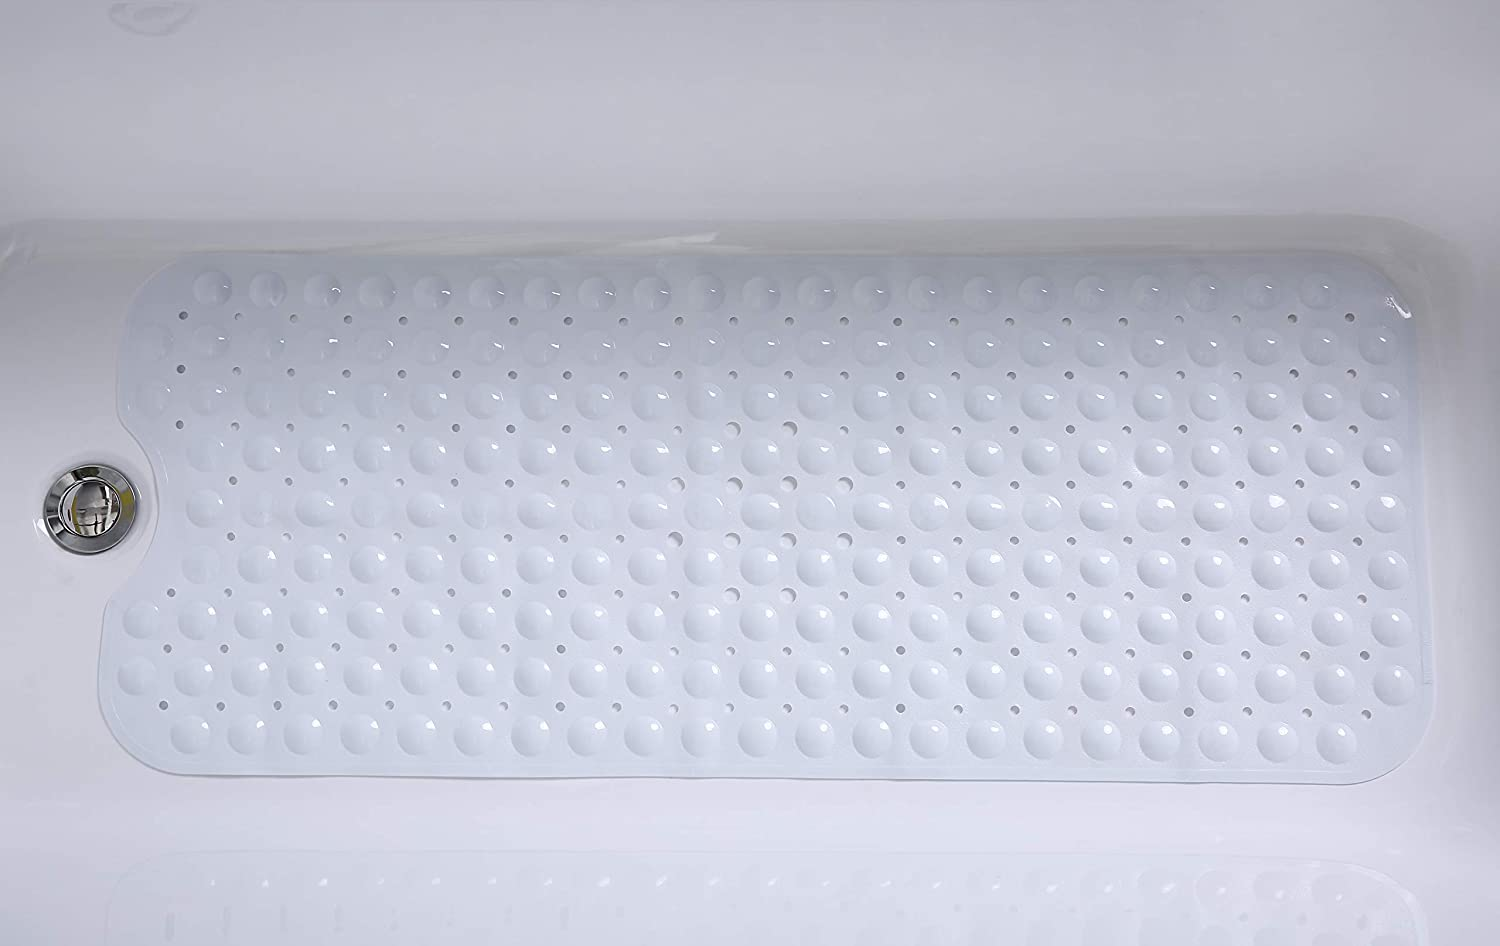 """TIKE SMART Extra-Long Non-Slip Bathtub & Shower Mat 39""""x16"""" (Smooth/Non-Textured Tubs Only) Safe,Clean,Anti-Bacterial,Machine-Washable,Superior Grip&Drainage, Vinyl, Opaque White: Home & Kitchen"""